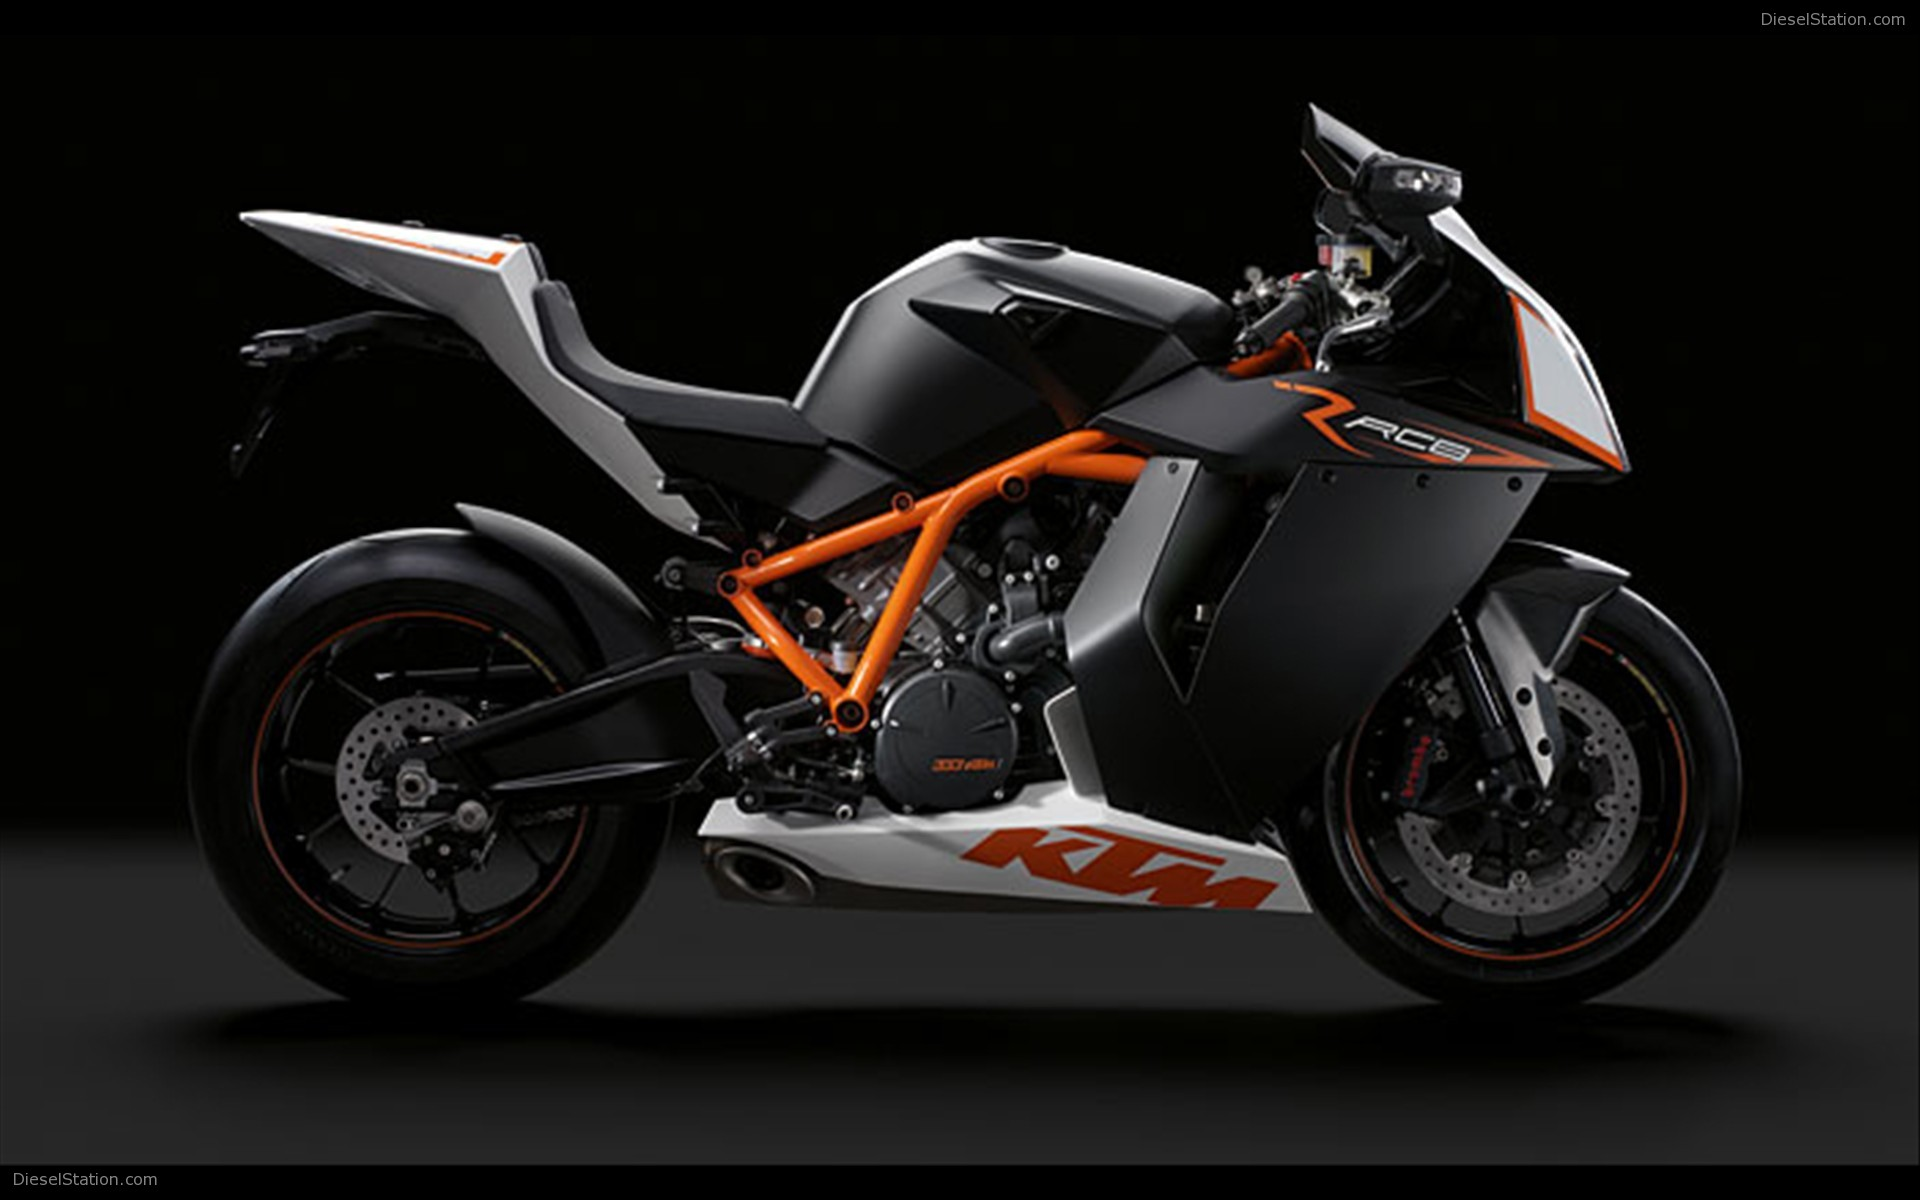 Ktm Rc8 Wallpaper Widescreen 1920x1200